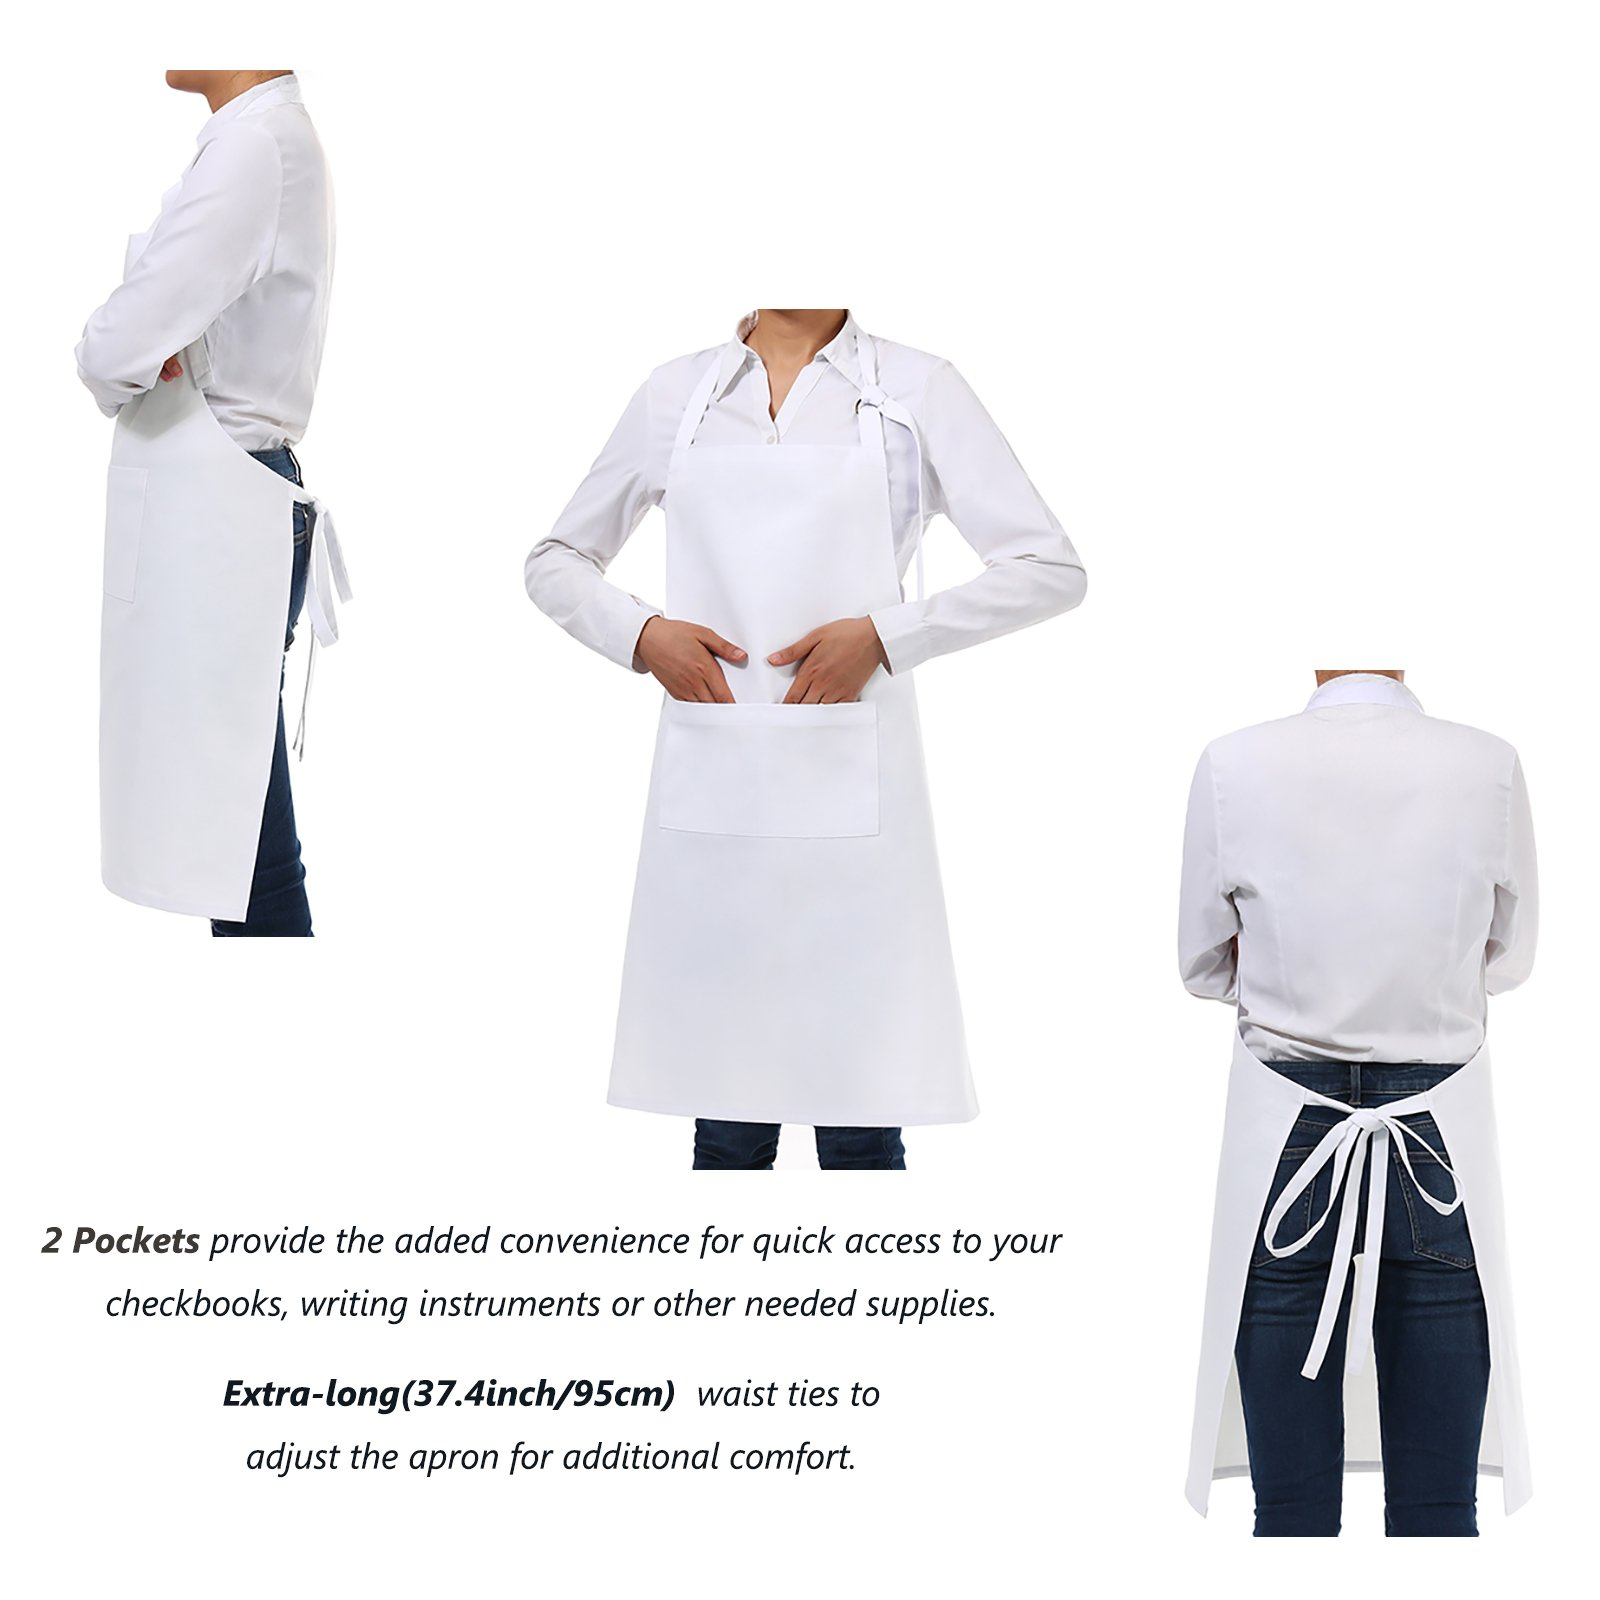 VEEYOO Adjustable Chef Bib Apron with 2 Pockets, Set of 2, Durable Spun Poly Cotton, Cooking Kitchen Restaurant Uniform Aprons for Men Women, 32x28 inches, White by VEEYOO (Image #4)